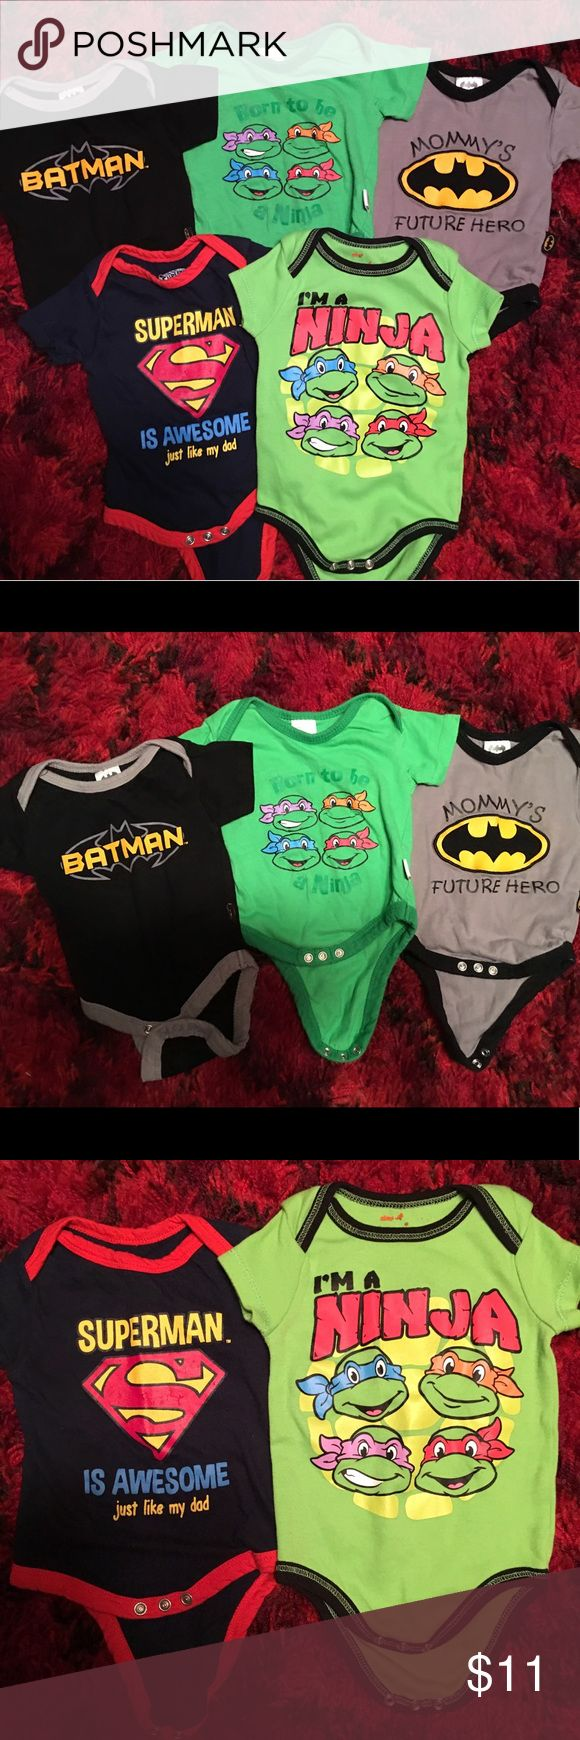 Superhero Infant Onesies Bundle Top row in pic: Black Batman onesie; green Teenage Mutant Ninja Turtles onesie; gray Batman onesie (all 3 are size 0-3 months.) Bottom row in pic: Superman onesie; Teenage Mutant Ninja Turtles onesie (both are size 3-6 months.) All onesies are in great condition with light wear. No stains, rips, holes. My guy outgrew and can no longer use. Comes from a smoke free home. Please make an offer if interested; reasonable offers will be accepted. Thanks!! One Pieces